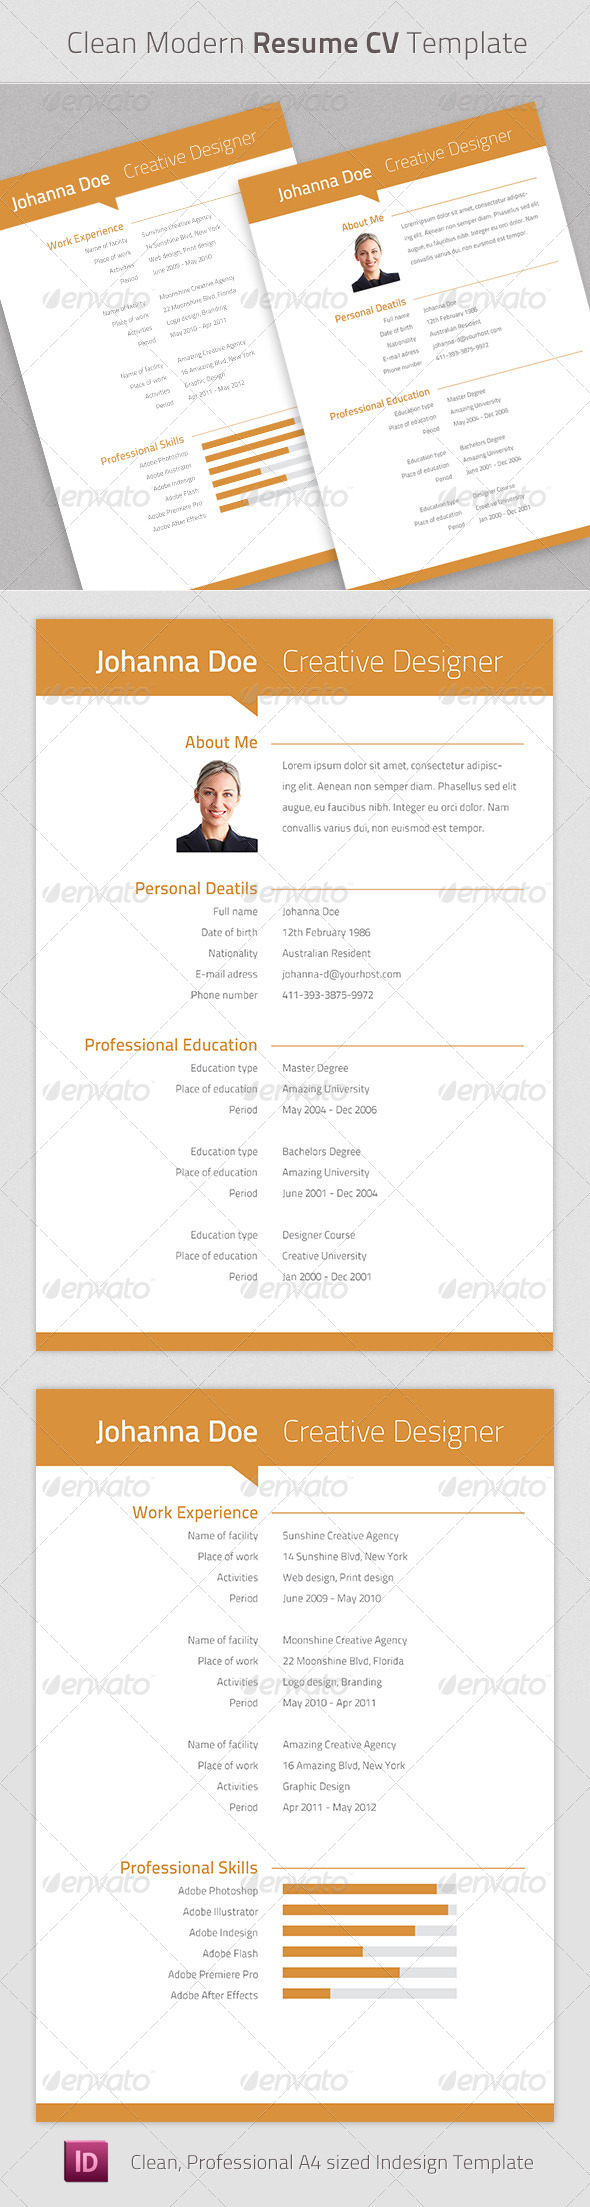 GraphicRiver Clean Modern Resume Cv Indesign Template 4070541